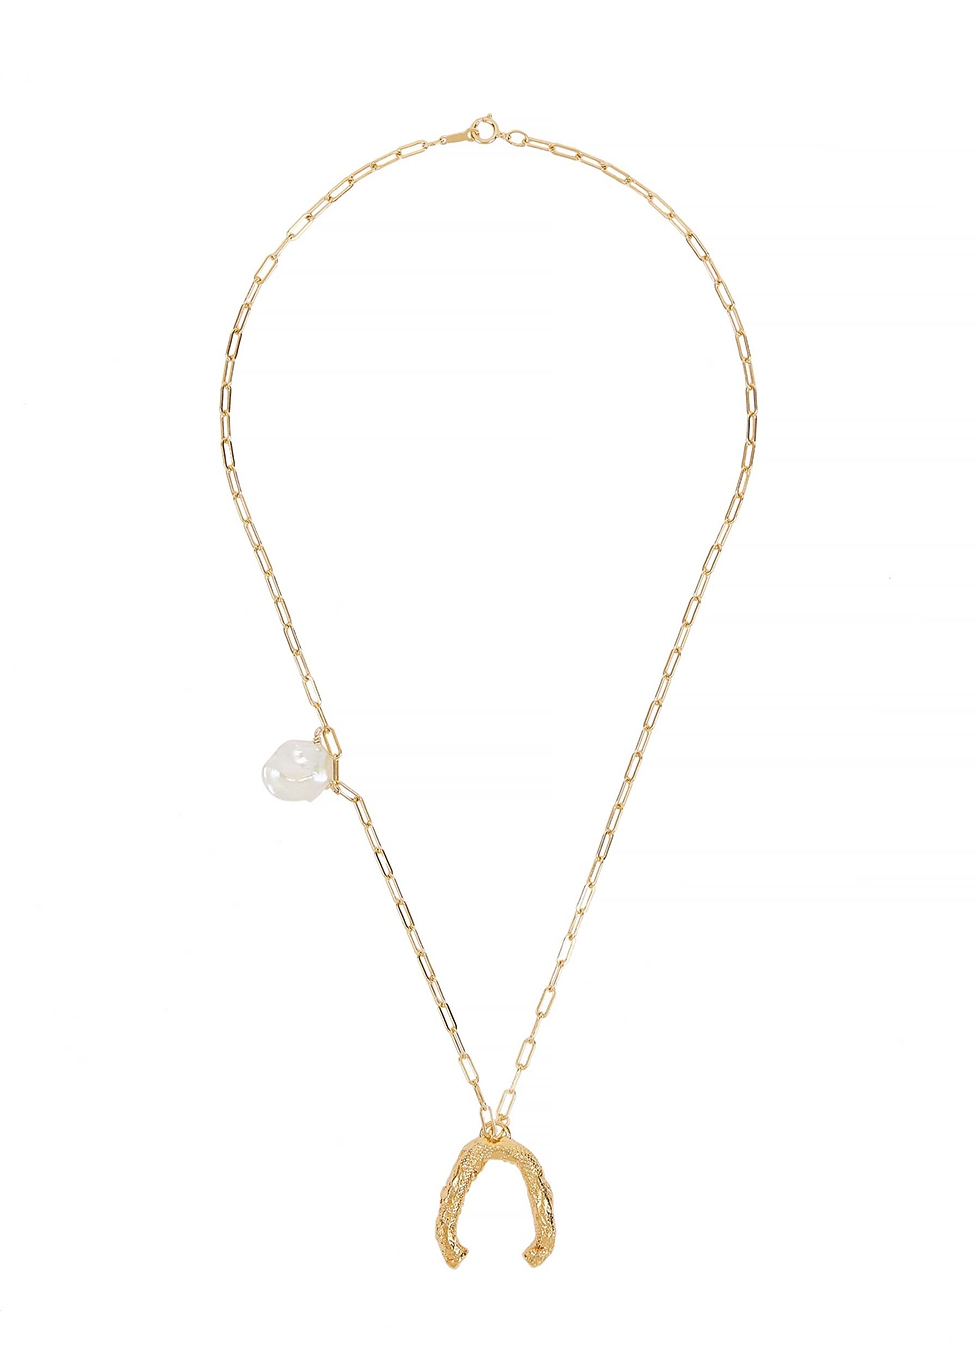 The Flashback River 24kt gold-plated necklace